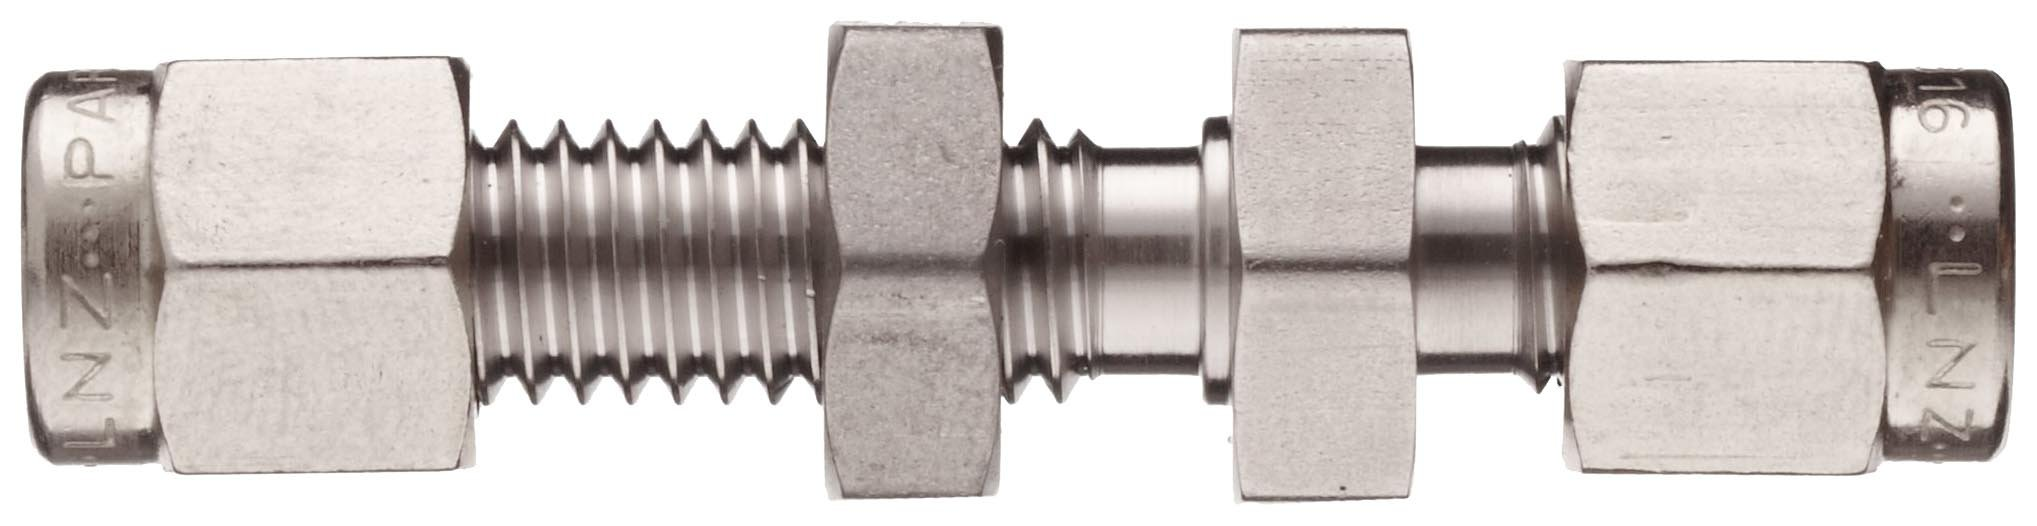 Parker A-Lok 4BC4-316 316 Stainless Steel Compression Tube Fitting, Bulkhead Union, 1/4'' Tube OD by Parker (Image #3)